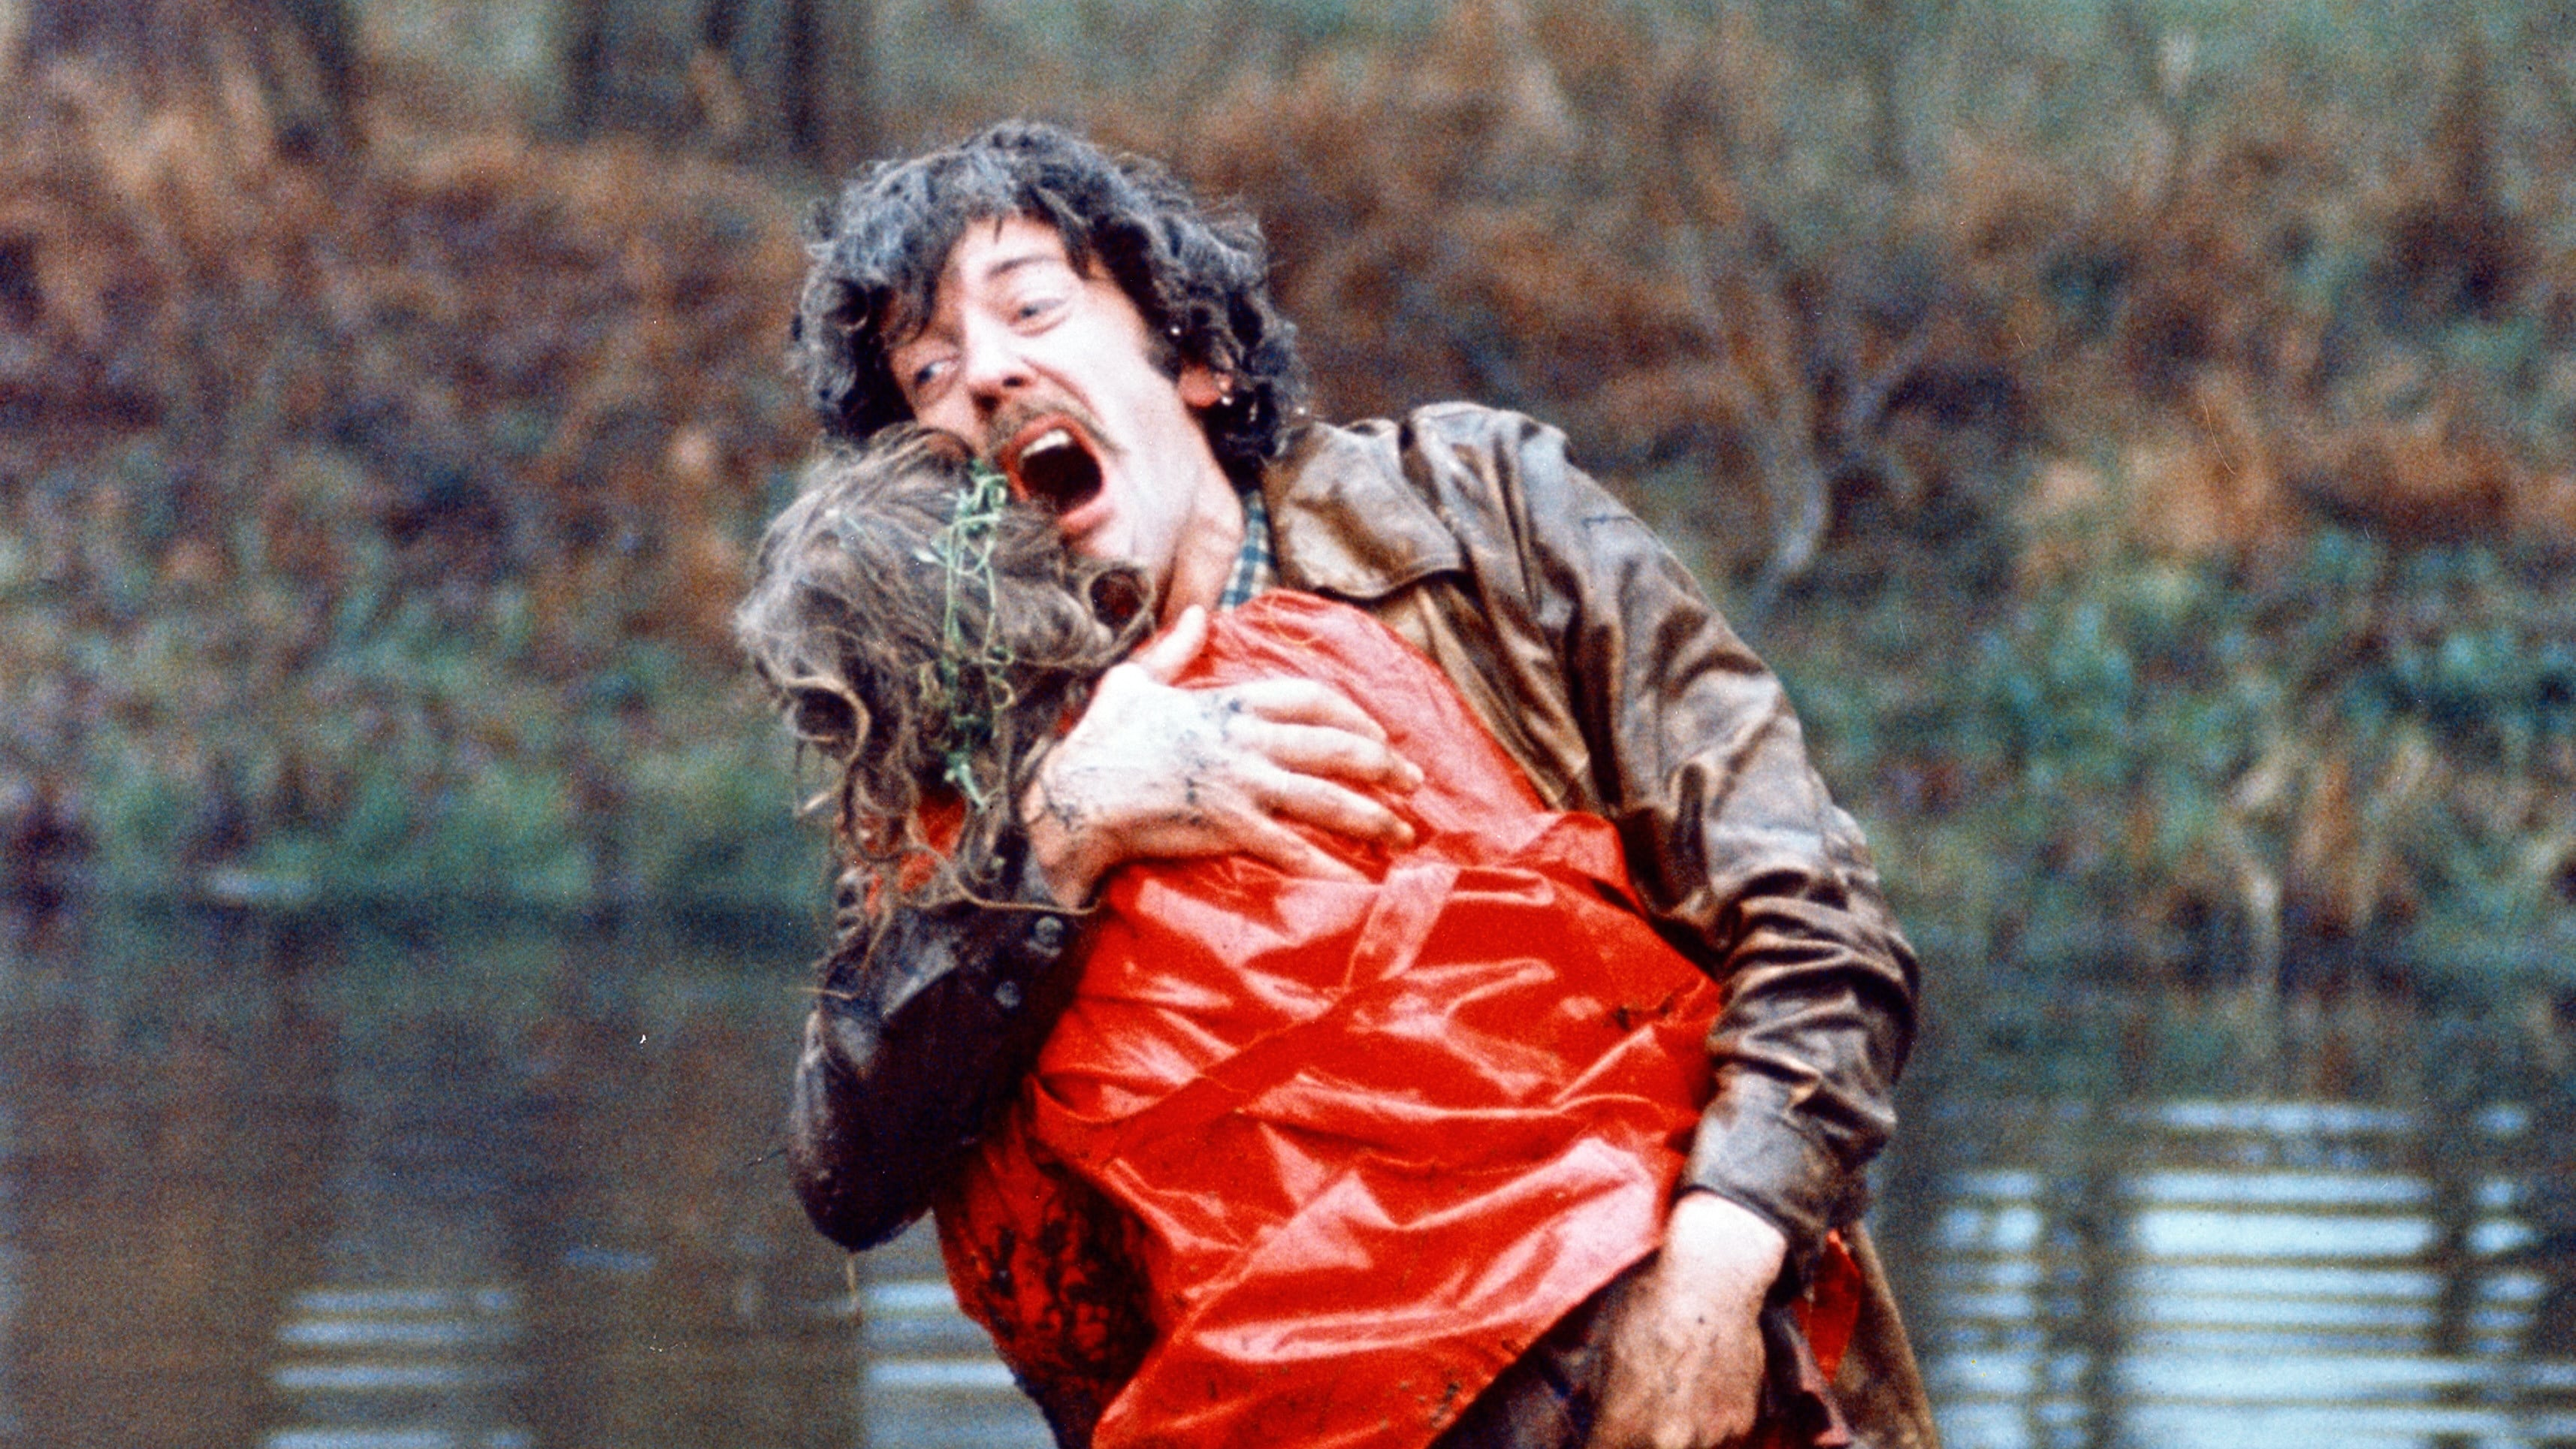 Don't Look Now | Nicholas Roeg | 1973 | UK | Cert 15 | 105 min | English language